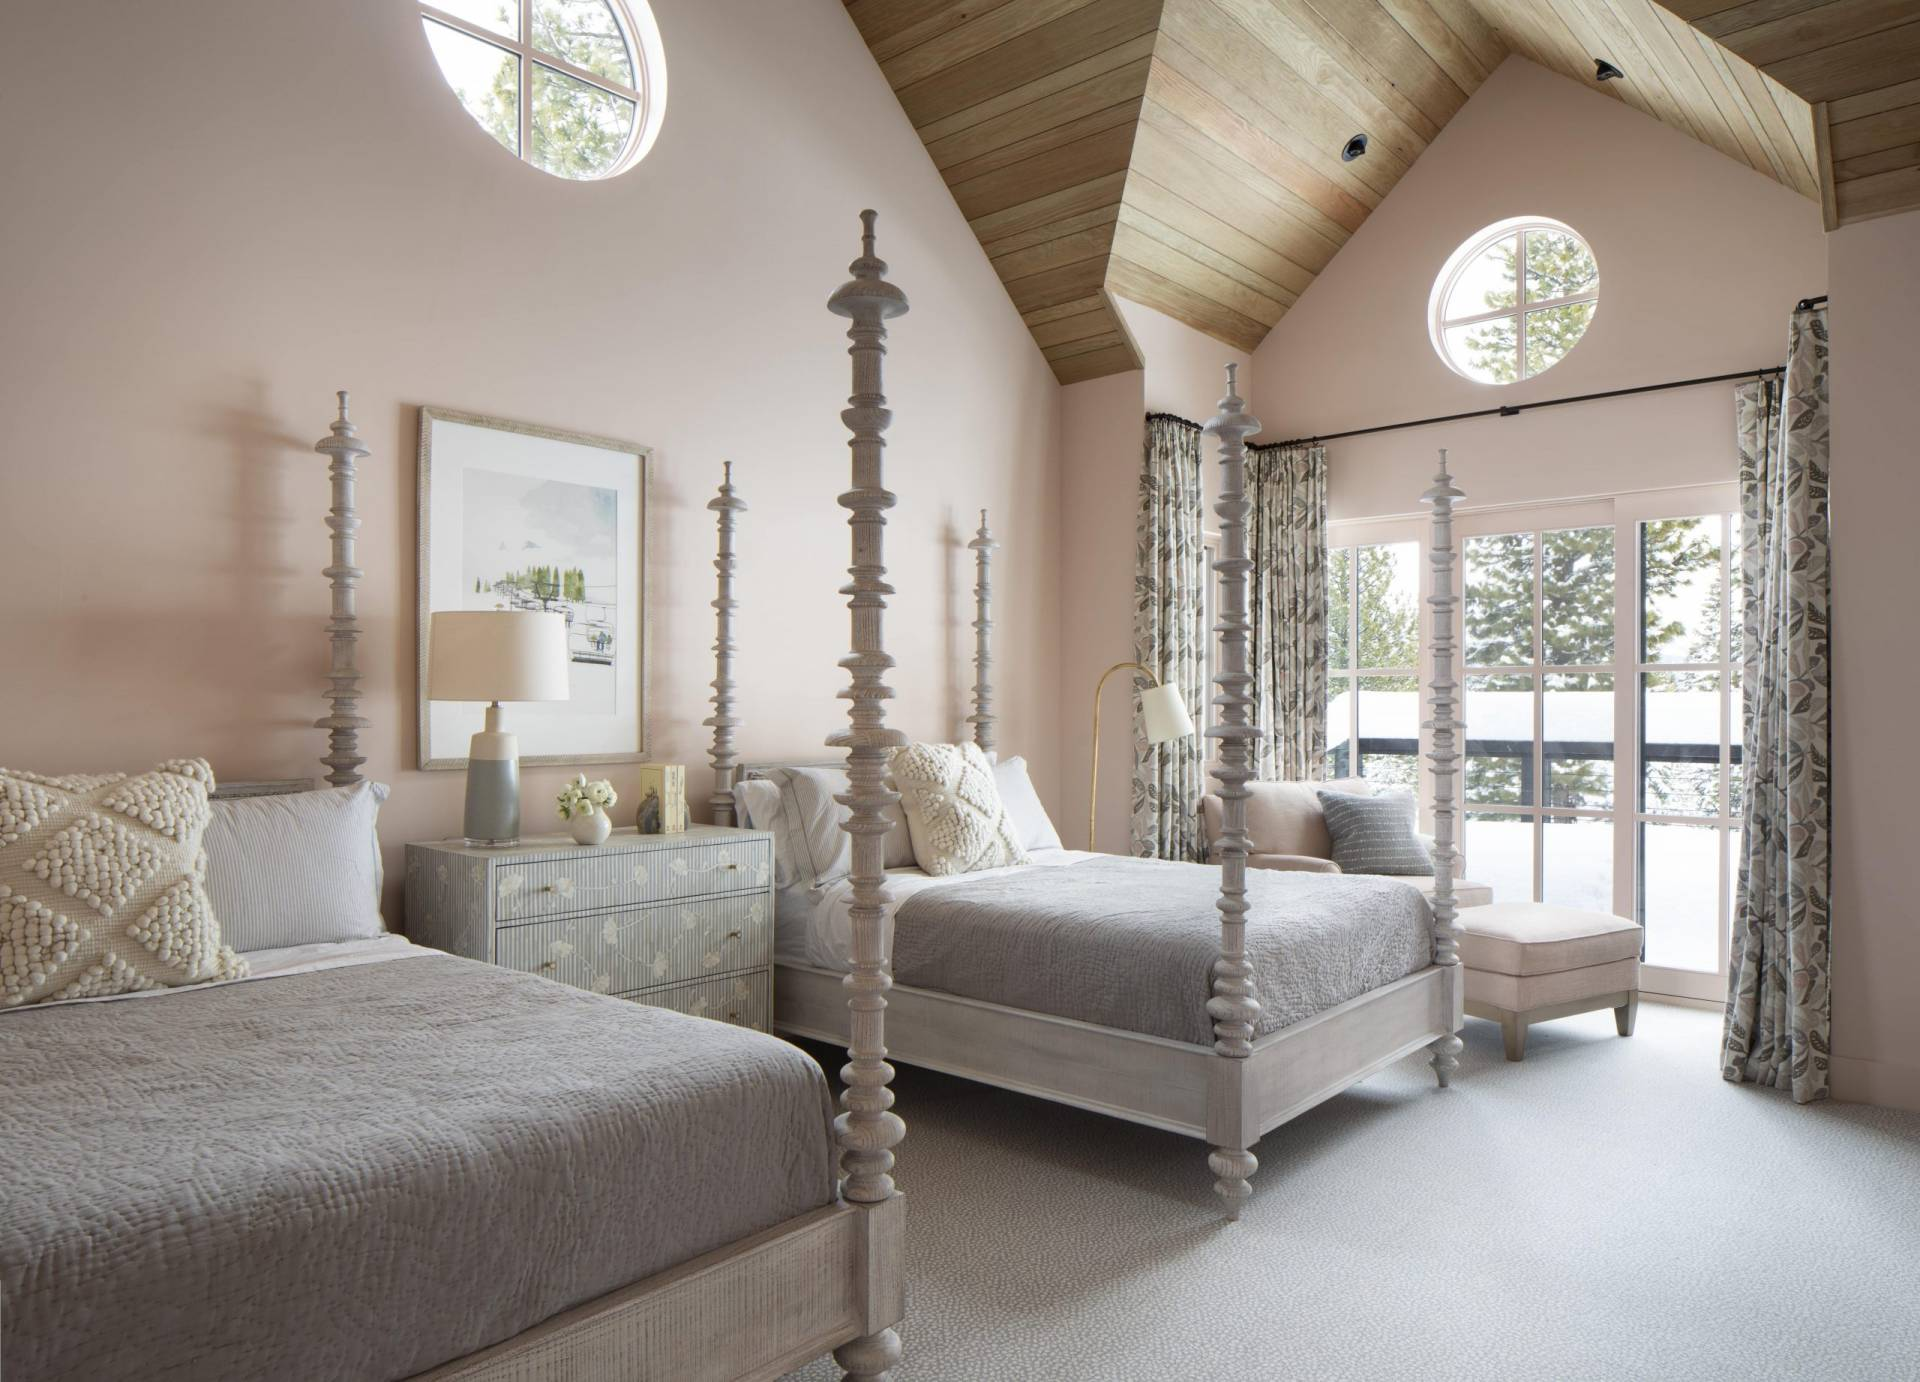 Guest bedroom light and fluffy bedding with printed drapes